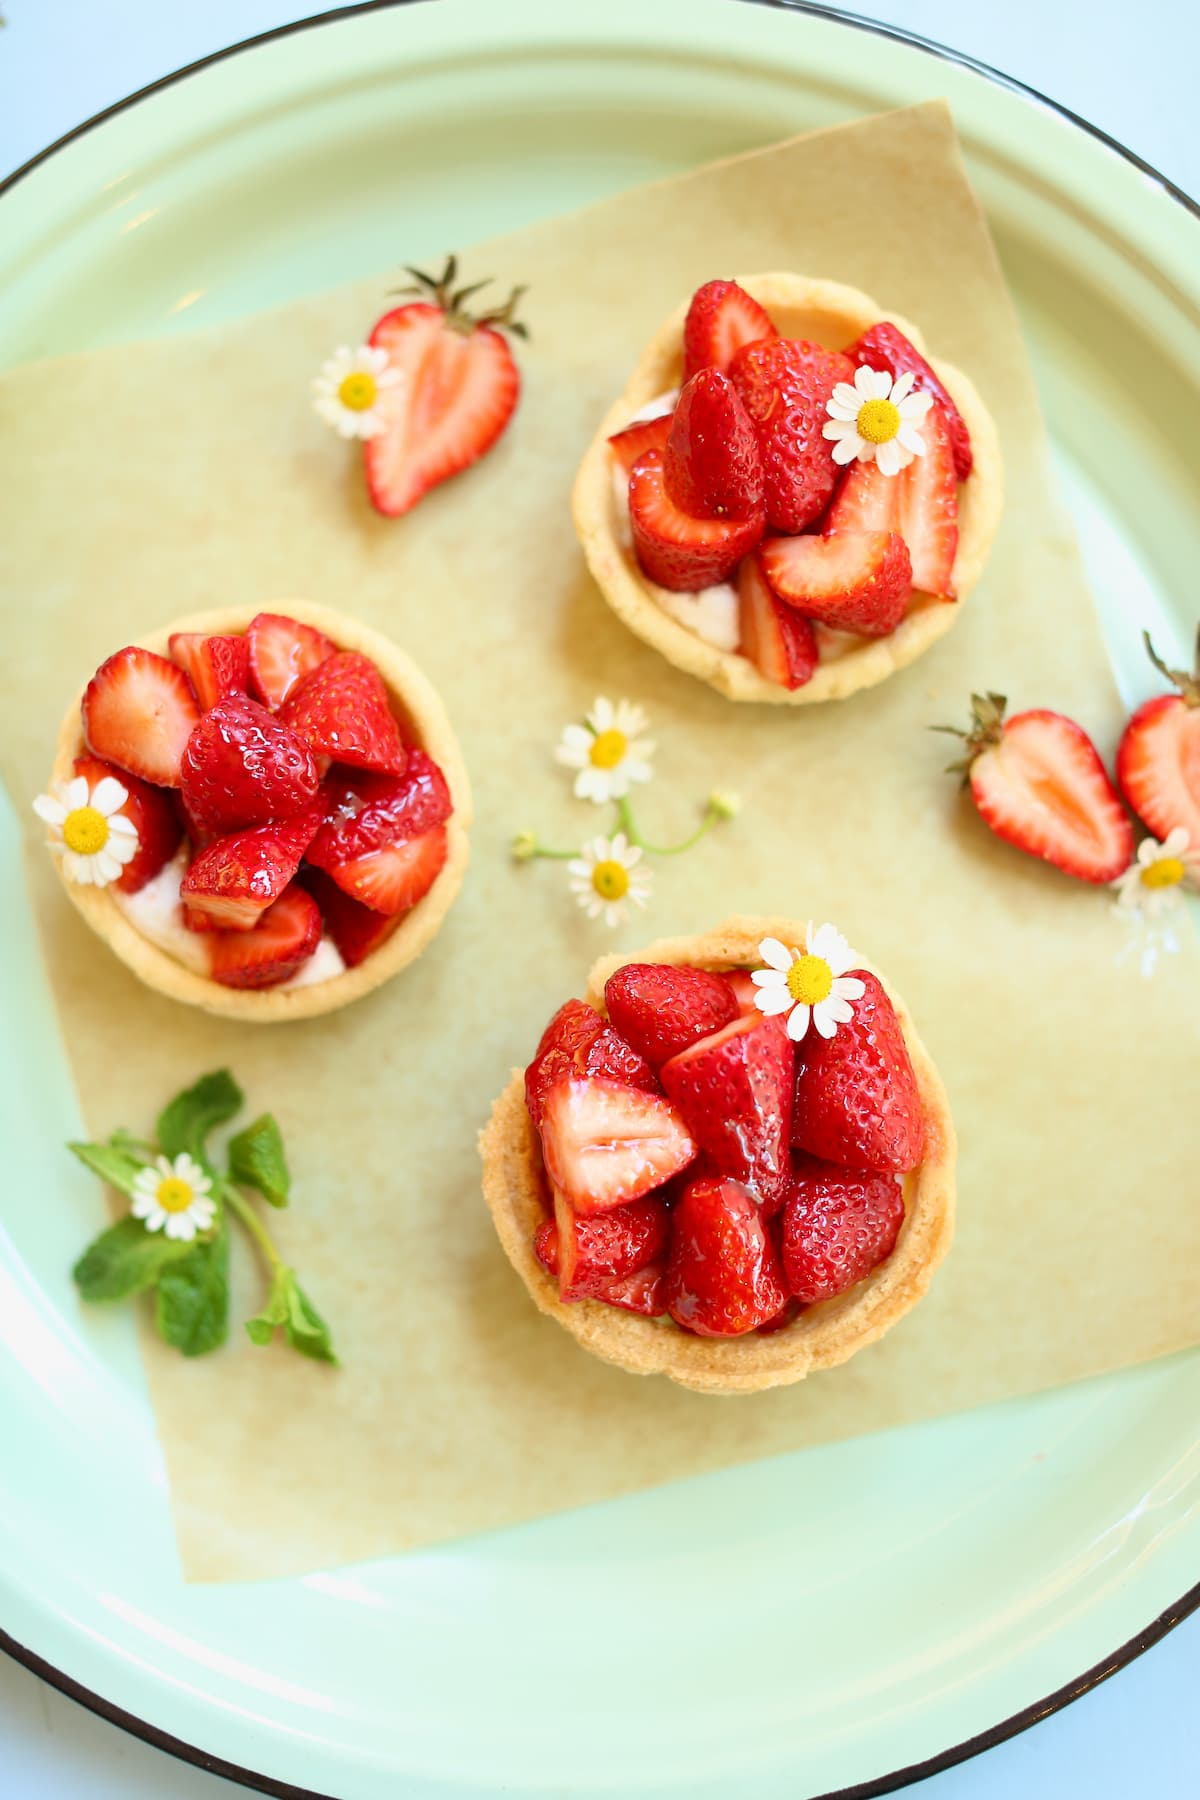 three small strawberry pies on a serving platter with fresh mint and small white flowers as garnish.